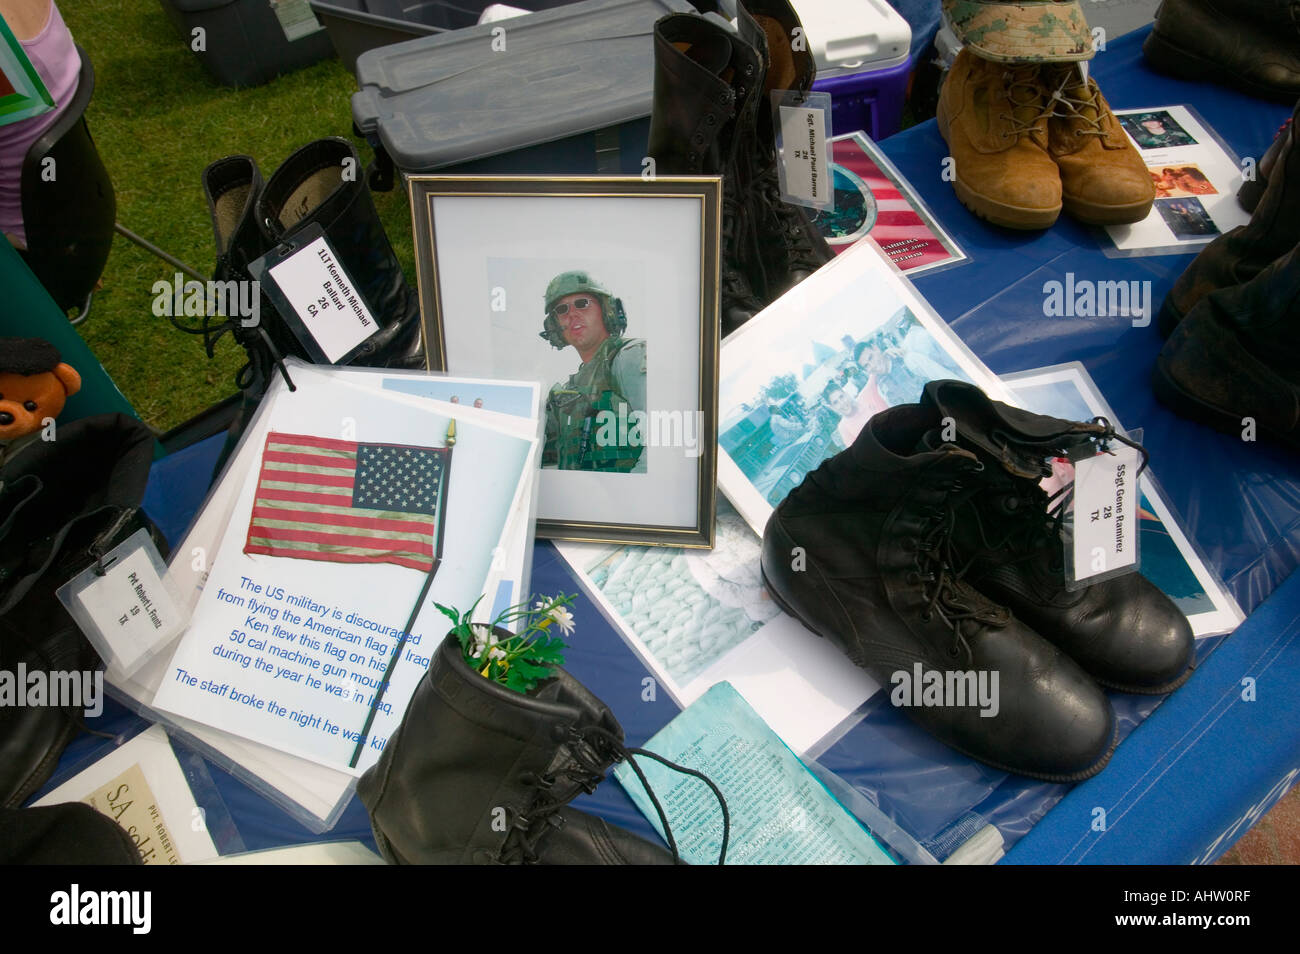 US Soldier killed as symbolized by 1746 Military boots showing US Military Personnel killed in Iraq at the Eyes Wide Open - Stock Image